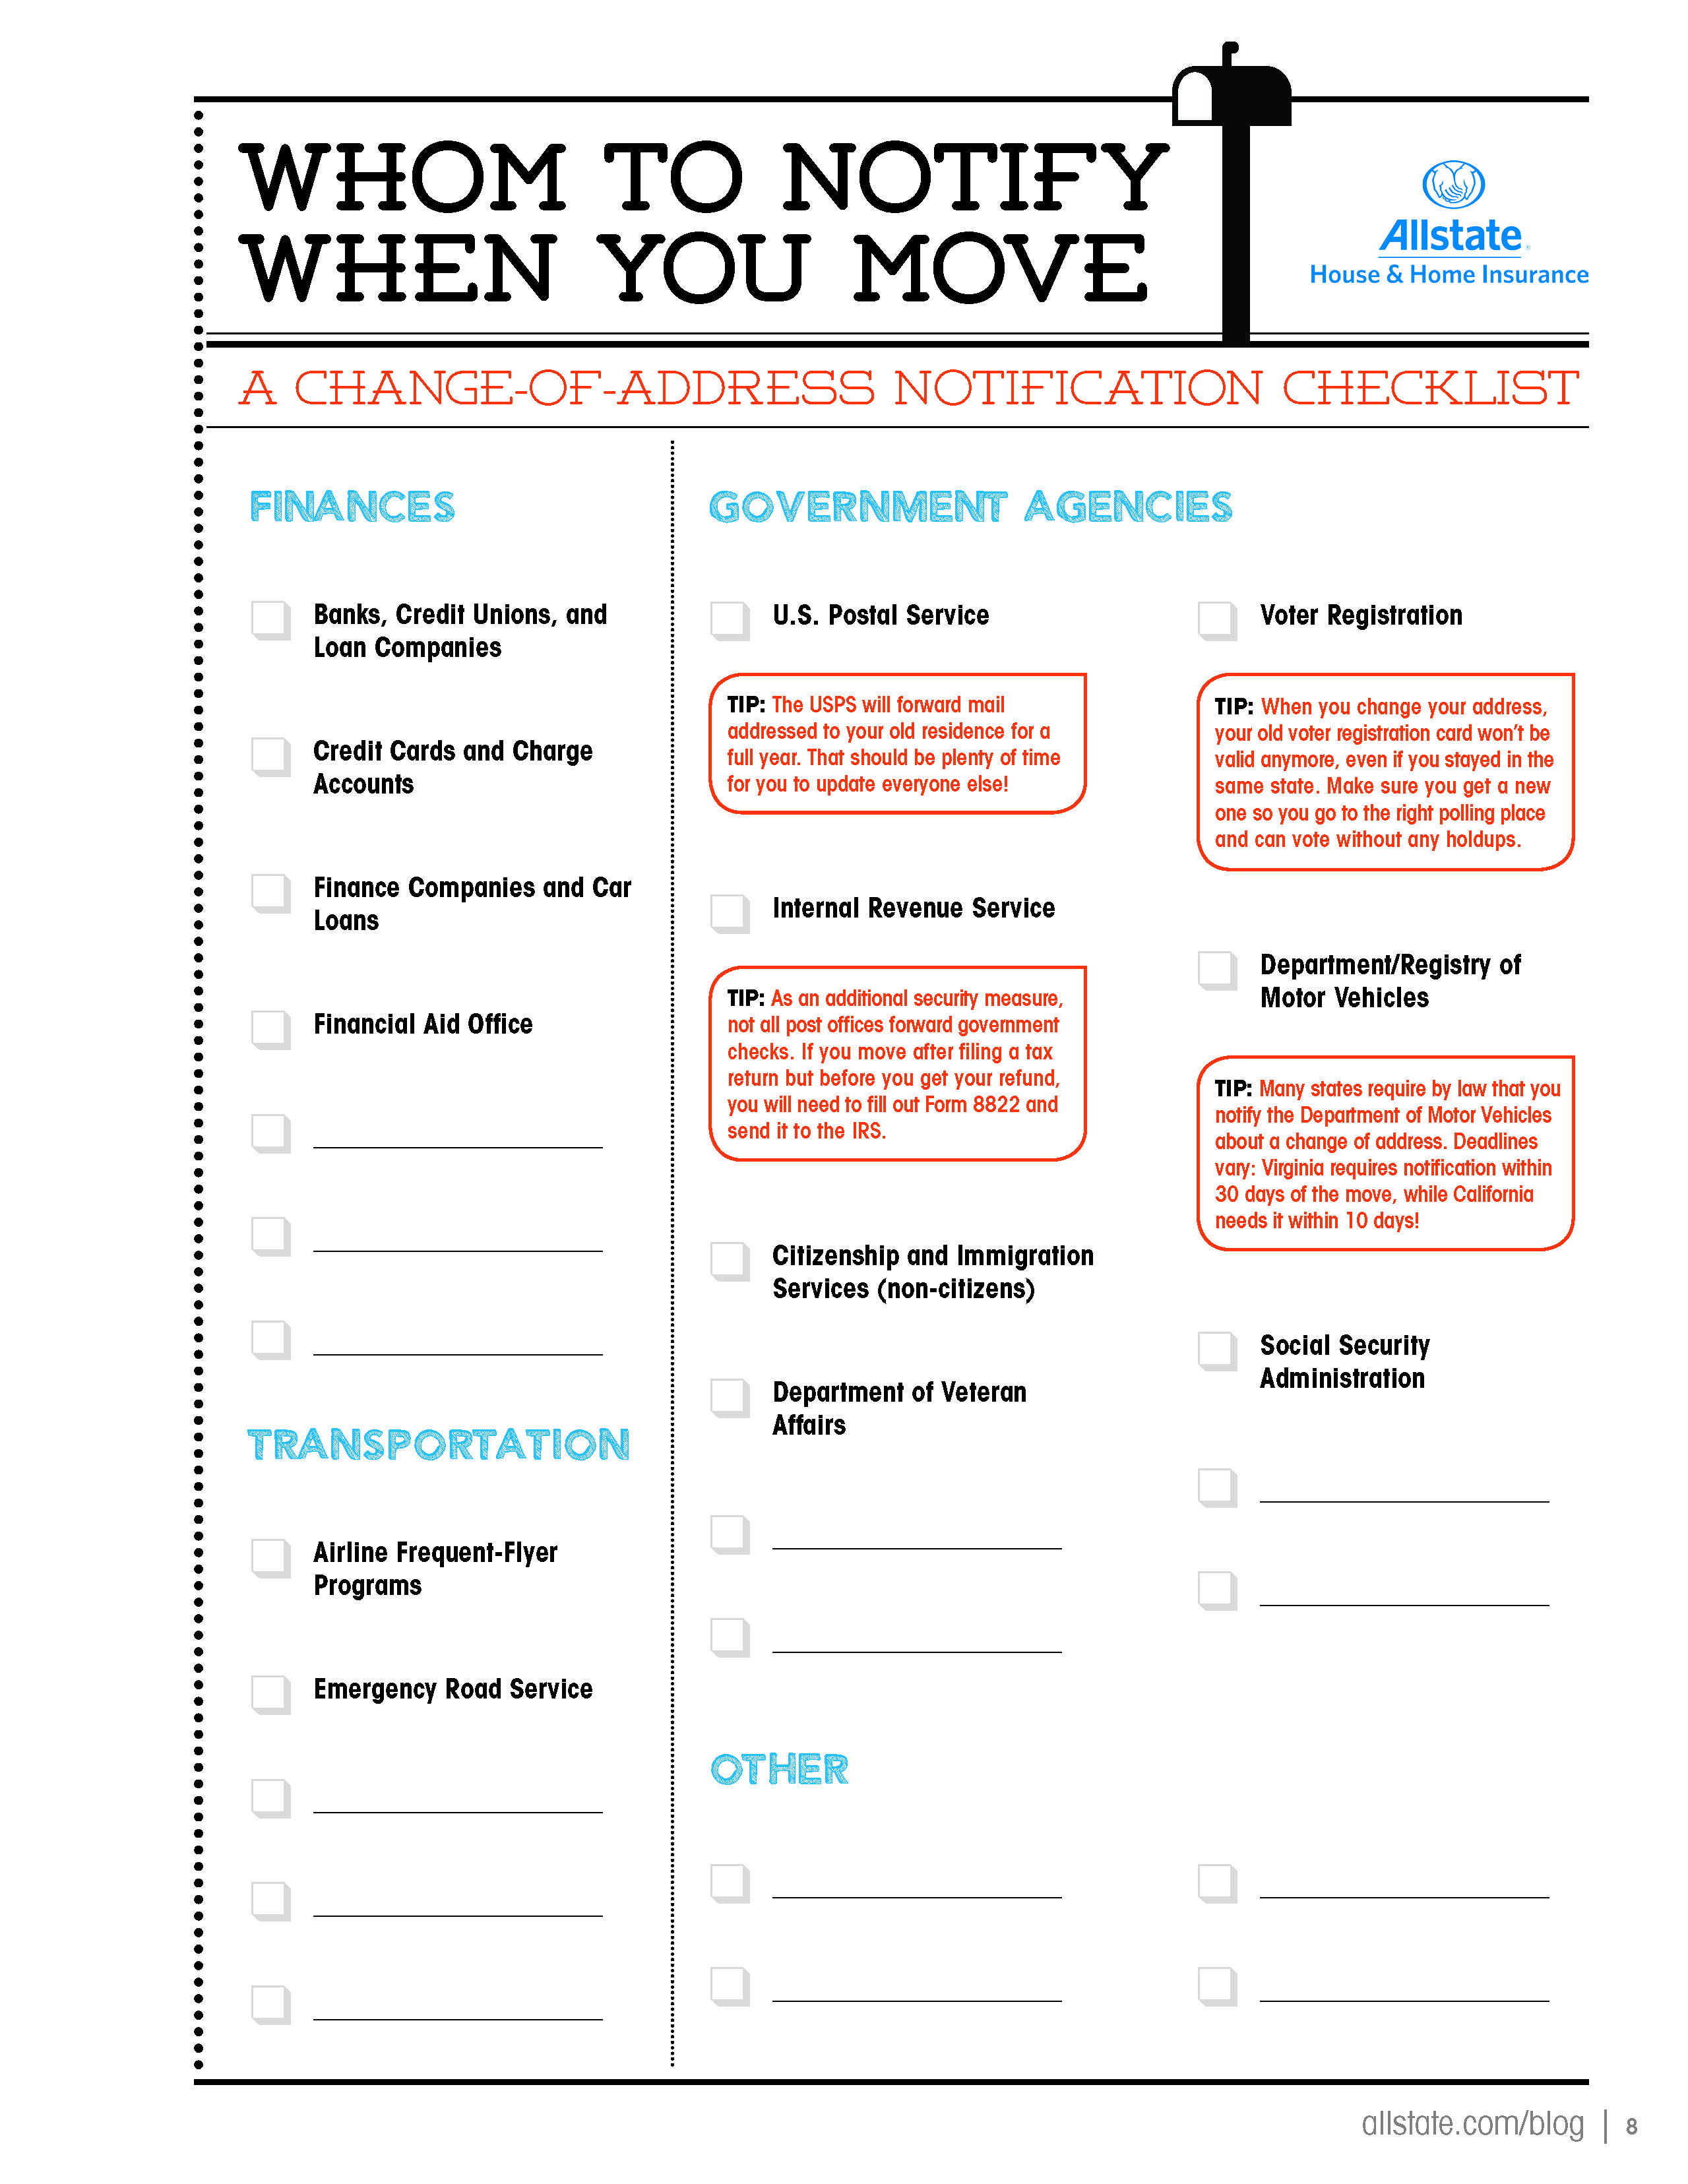 Whom To Notify When You Move page 2 of 2 LoveYourHome